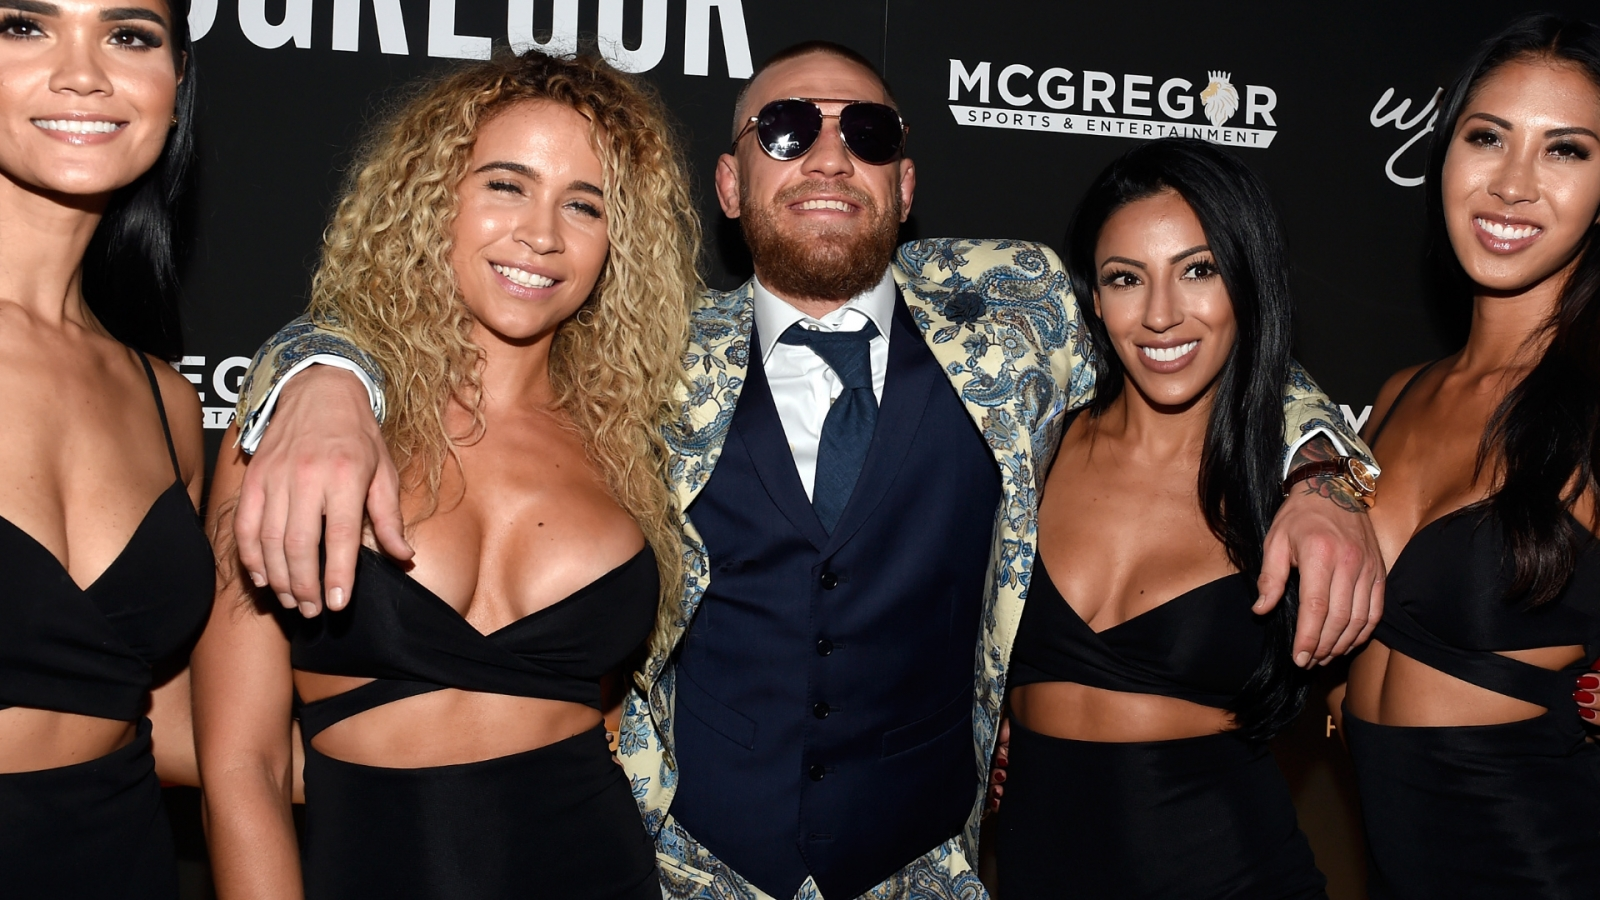 conor-mcgregor-gives-a-shout-out-to-rita-ora